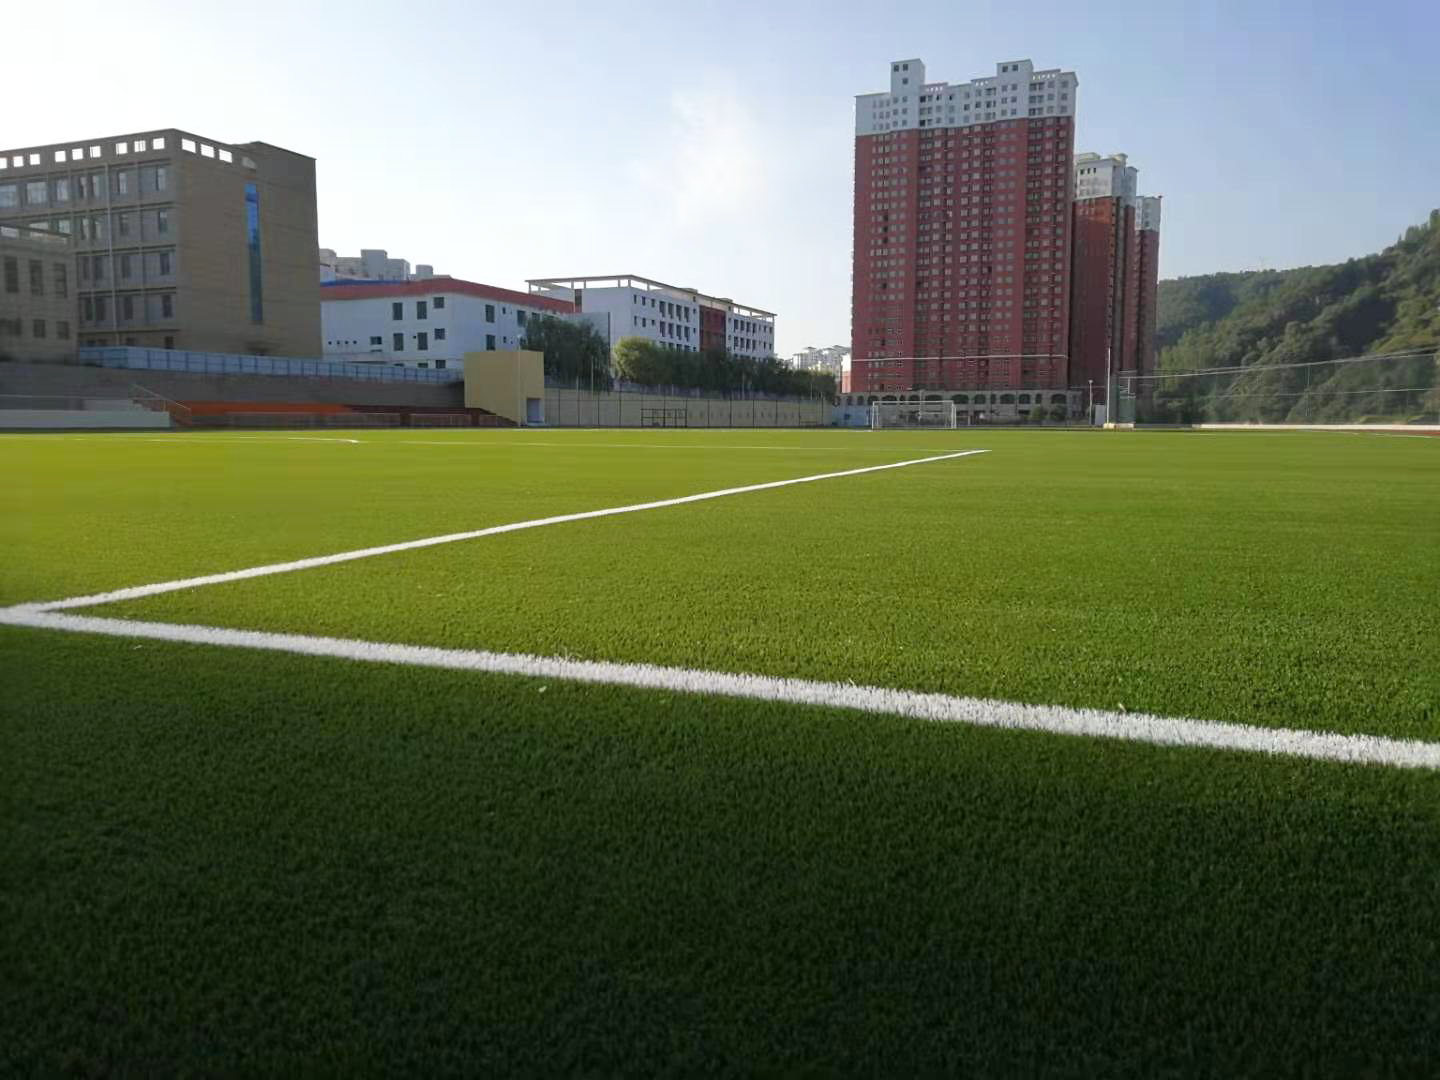 Top 5 considerations when choosing your next sports field surface